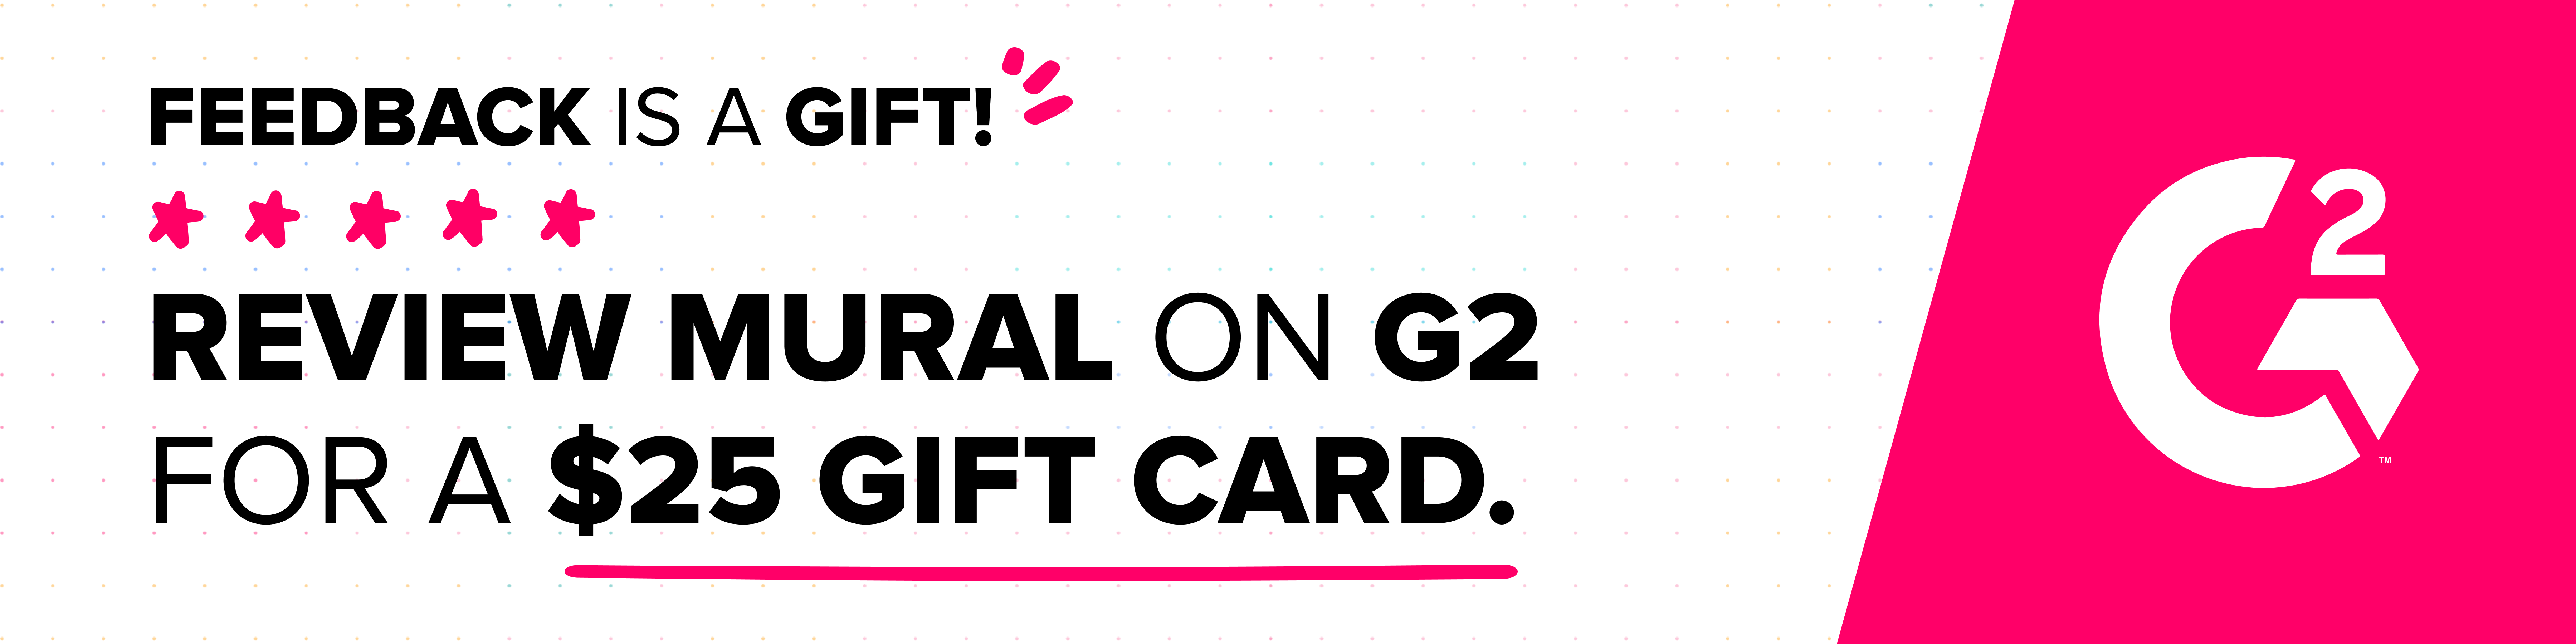 Review us on G2!